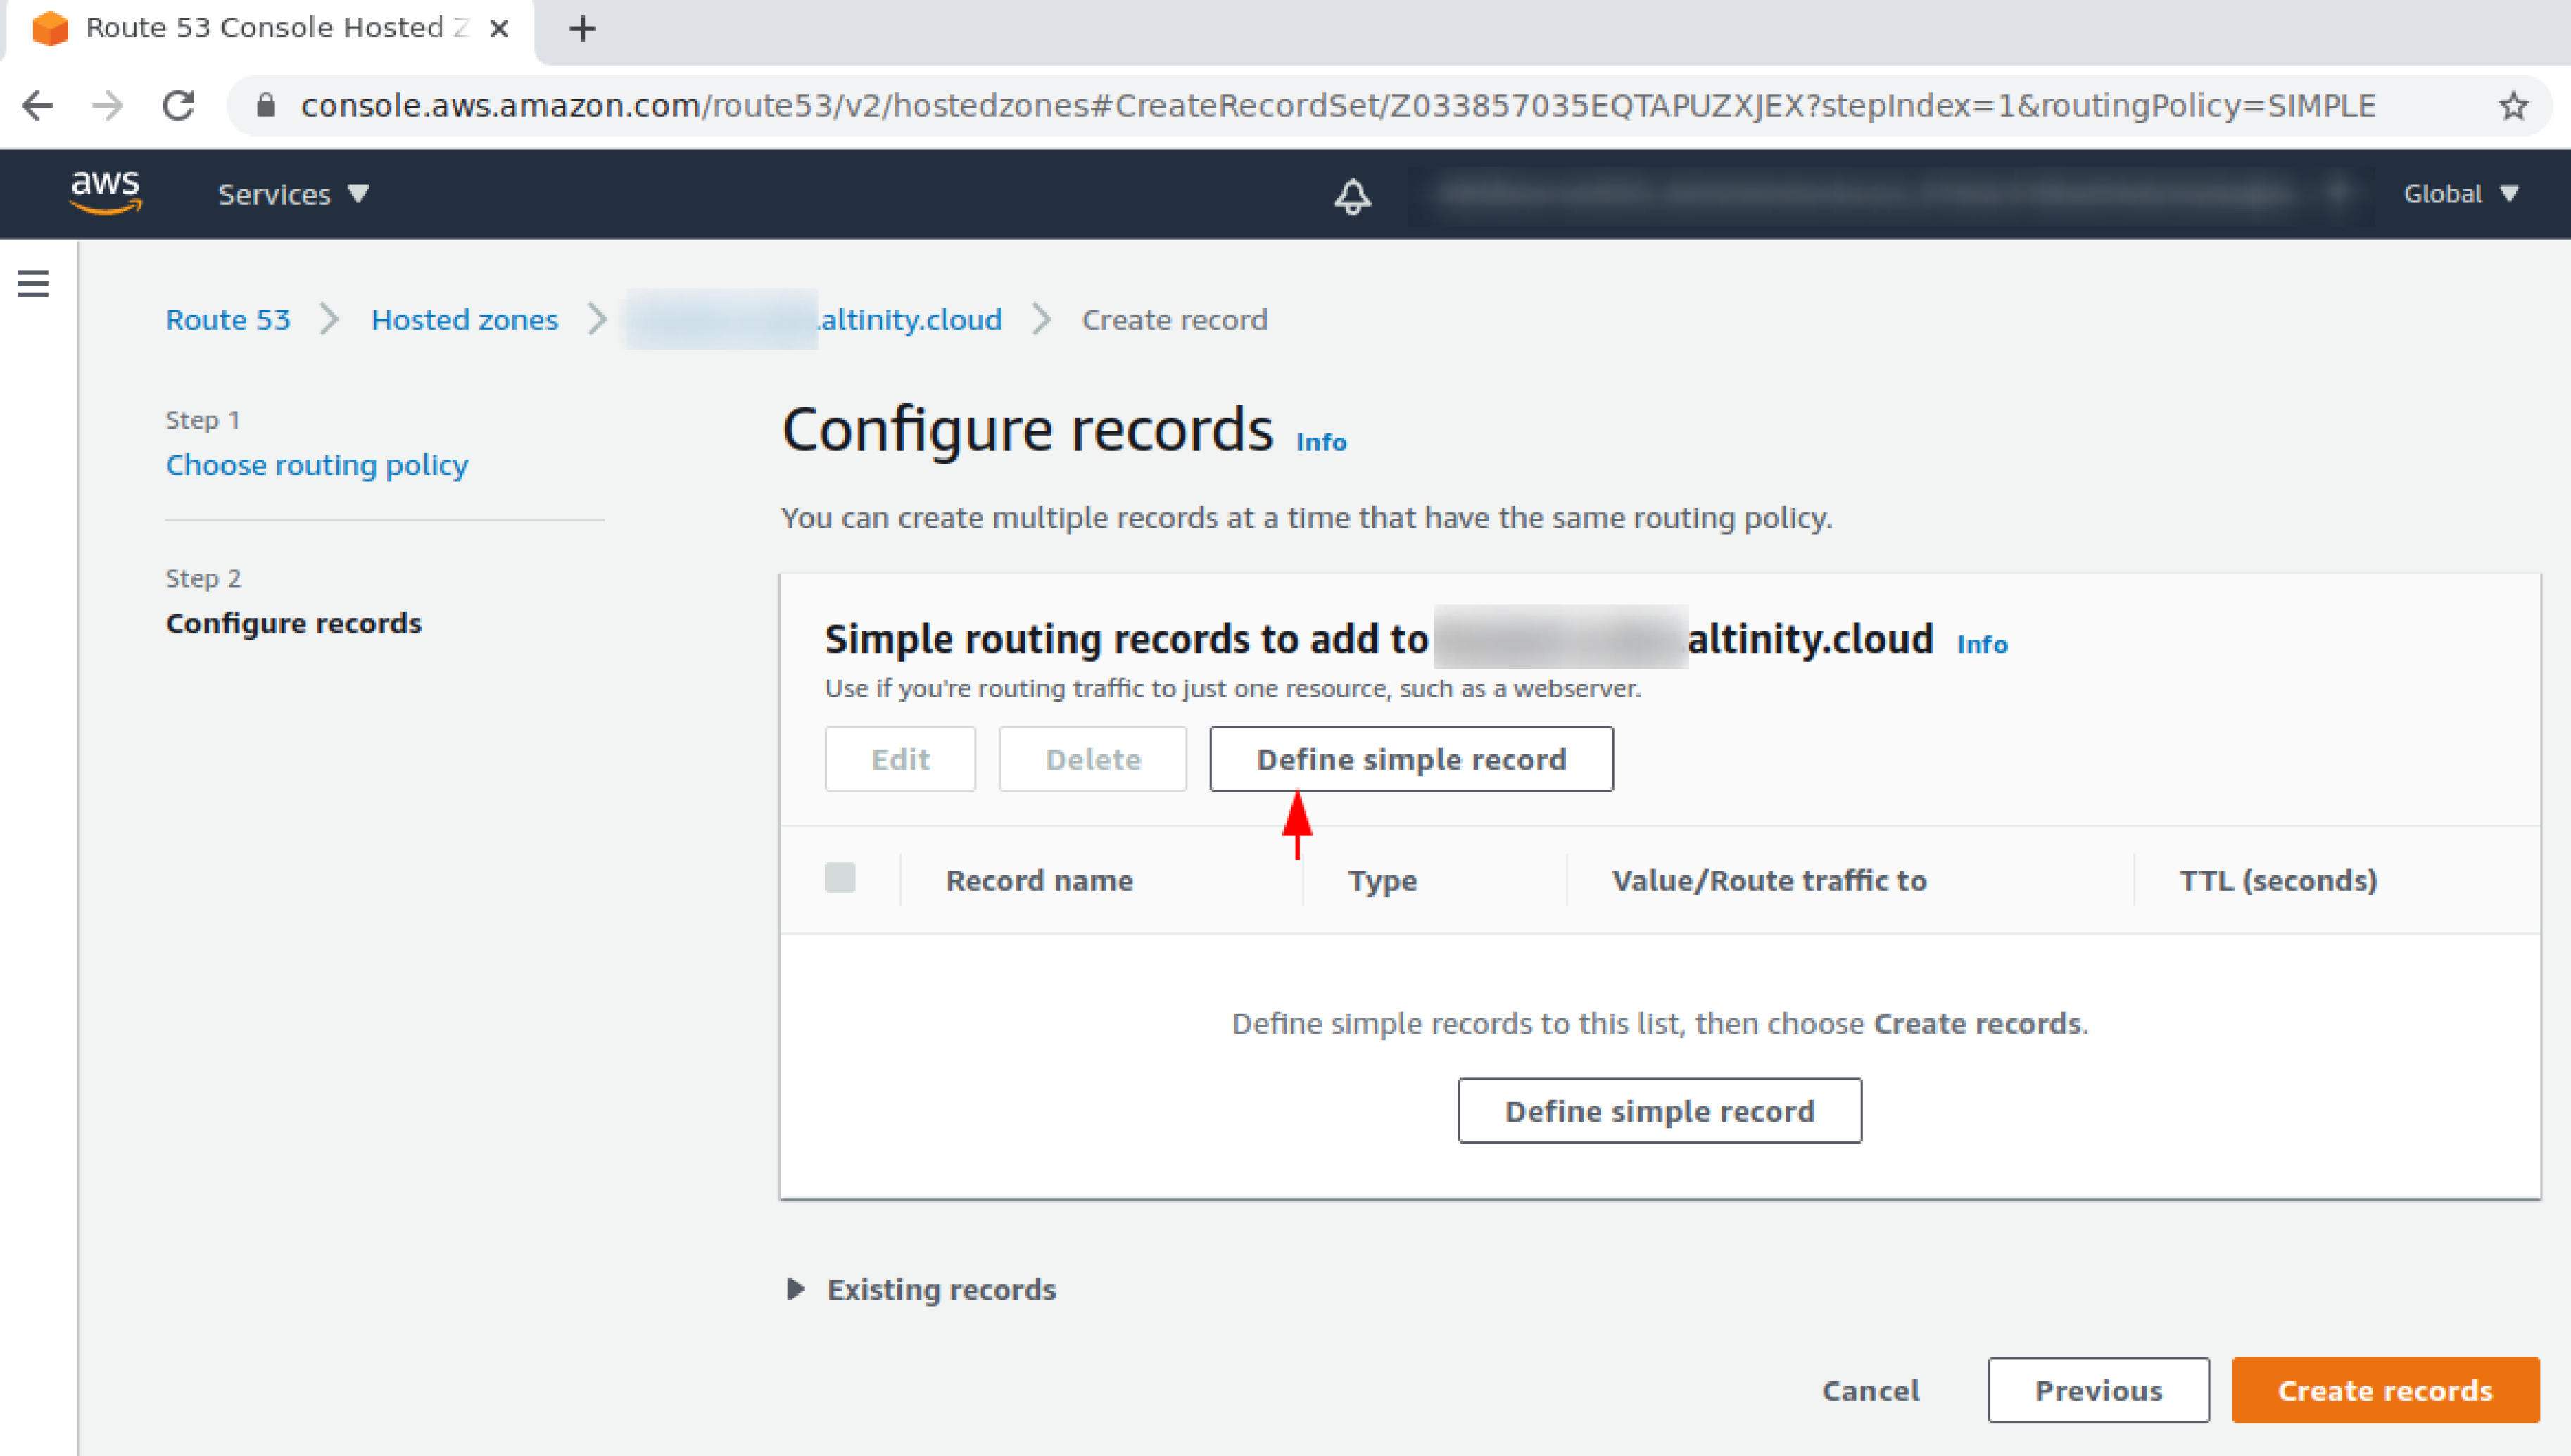 Select Define simple record